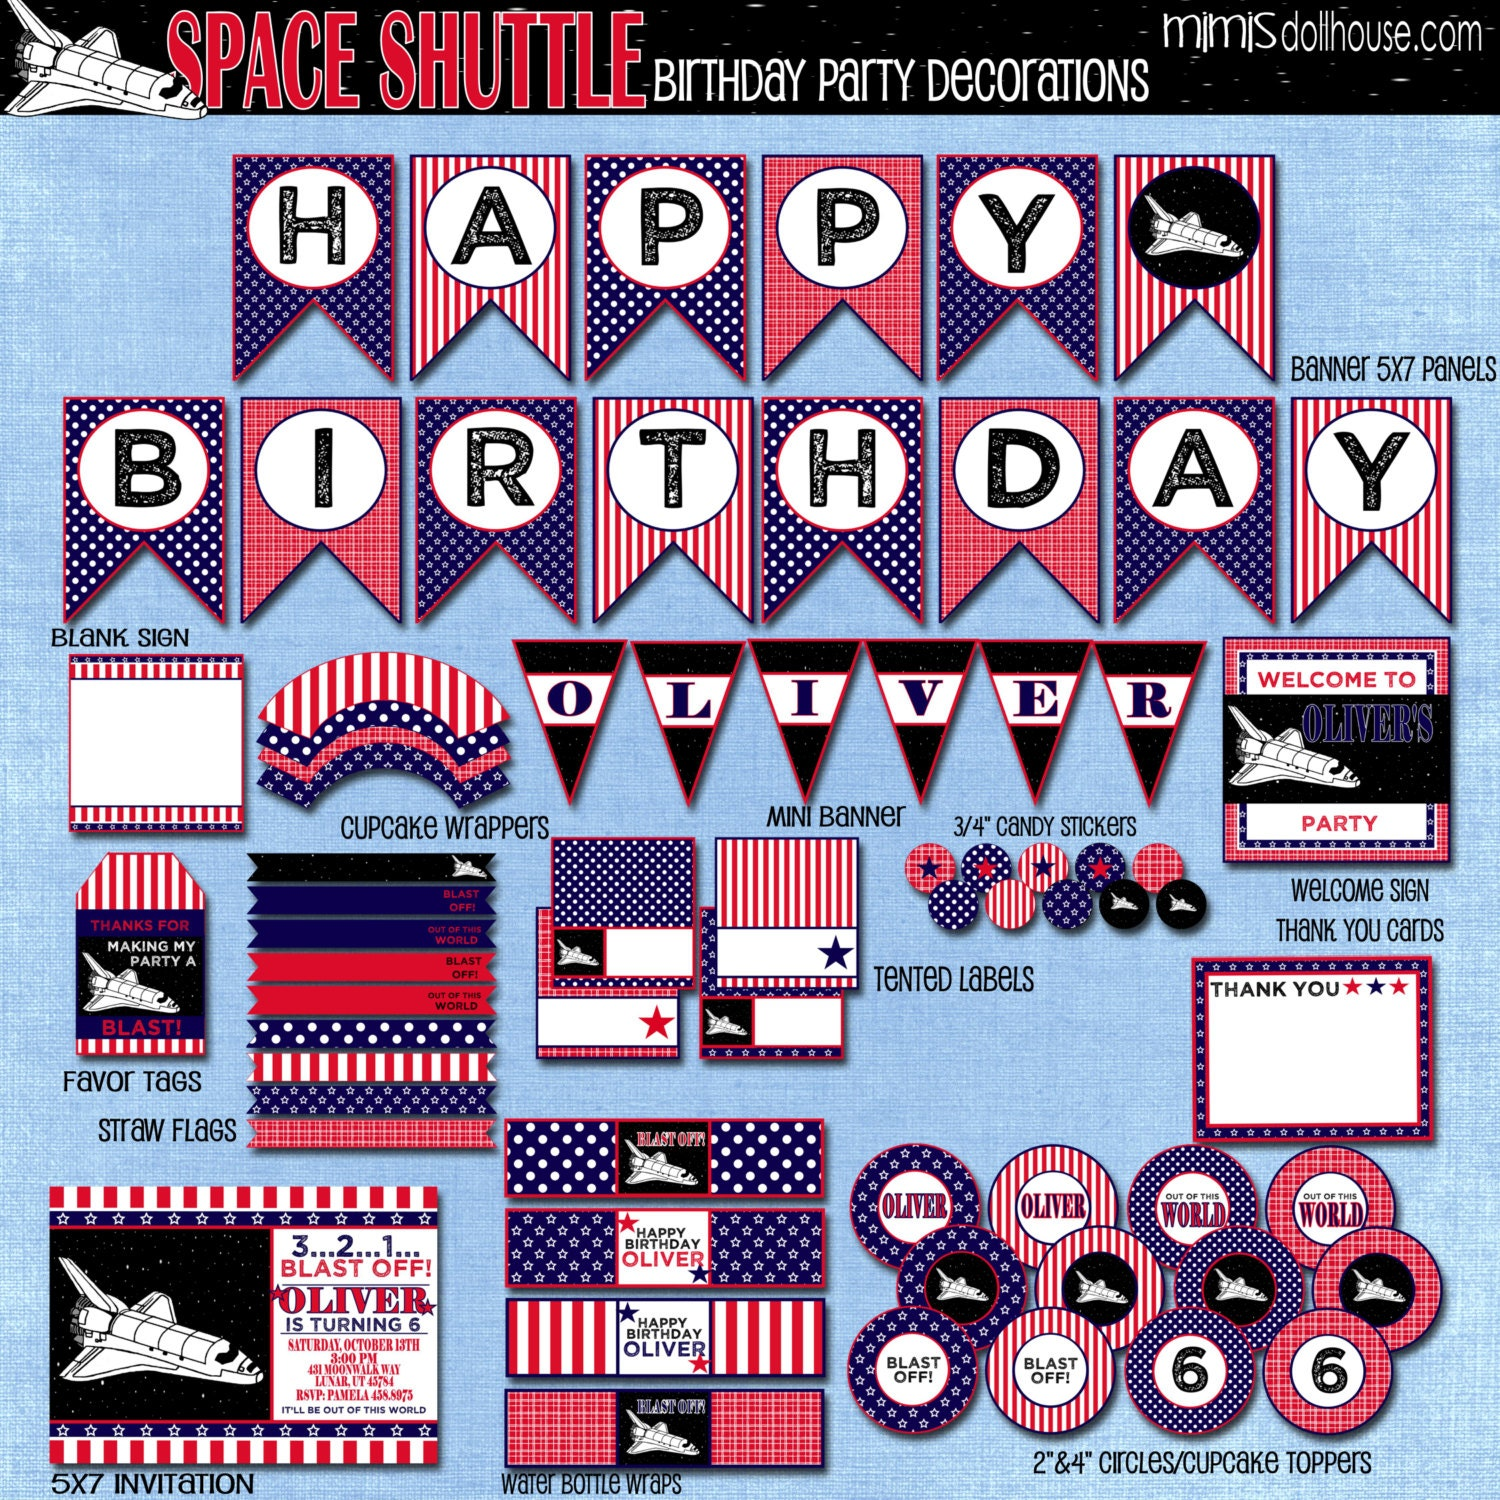 Space shuttle decorations printable space birthday party decorations